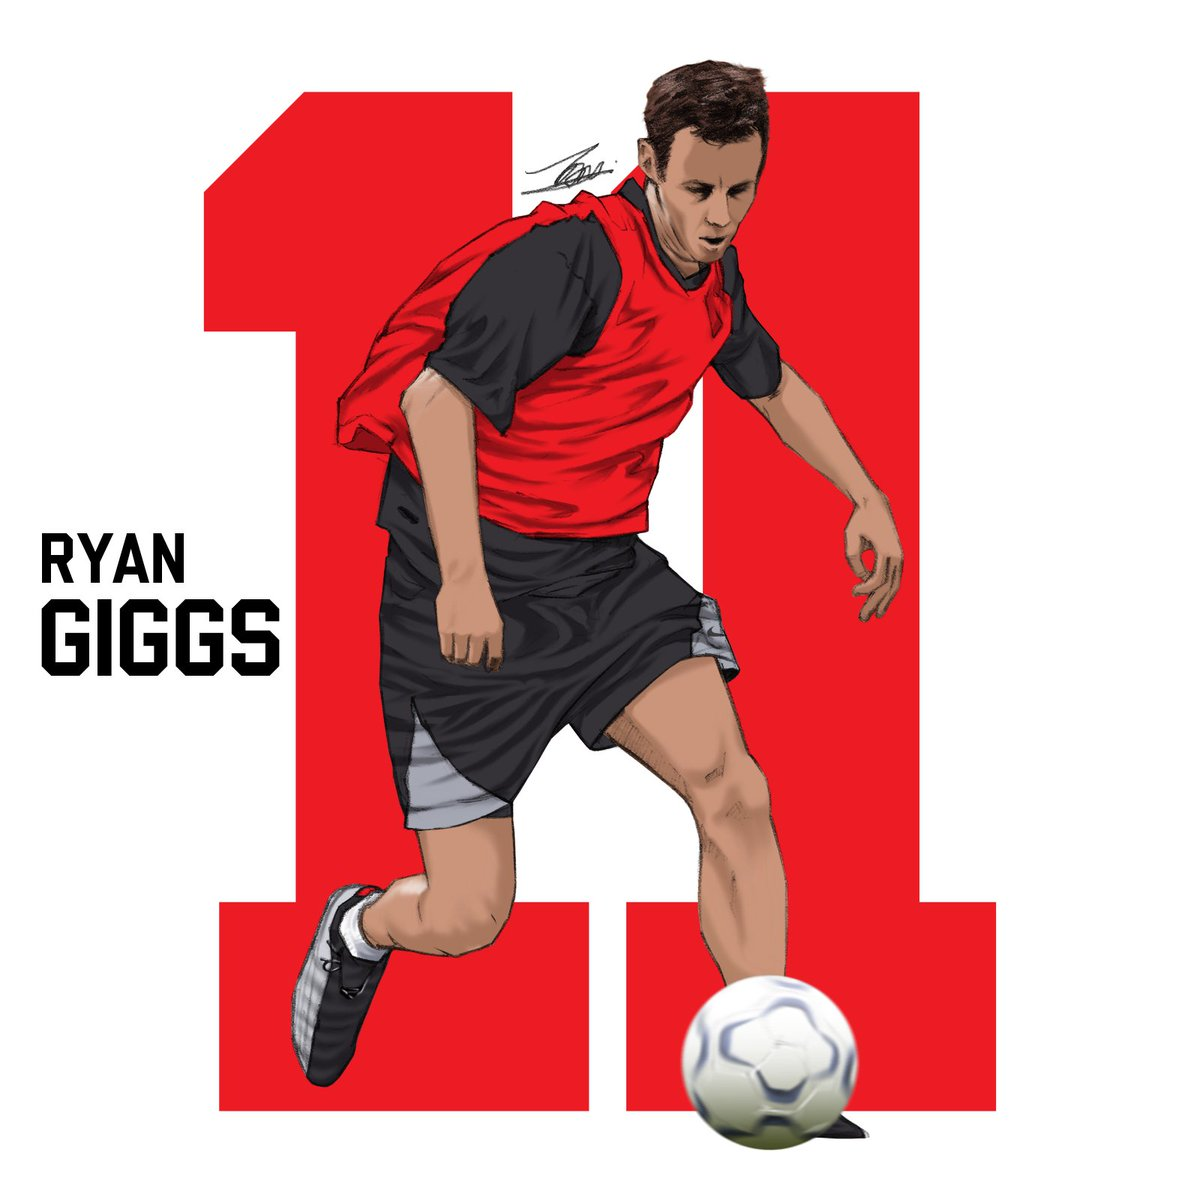 ✍️ #MCO Drawing Session: Ryan Giggs ---------- 🔴 The 🏴󠁧󠁢󠁷󠁬󠁳󠁿 Welsh Wizard of Manchester United 🔴 ---------- #classof92 #football #ryangiggs #giggsy #manchesterunited #manutd #mufc #ggmu #wales #cymru #瑞恩吉格斯 #吉格斯 #傑斯 #足球 #sketch #drawing #pencilsketch #quicksketch https://t.co/uE42B57Kuz